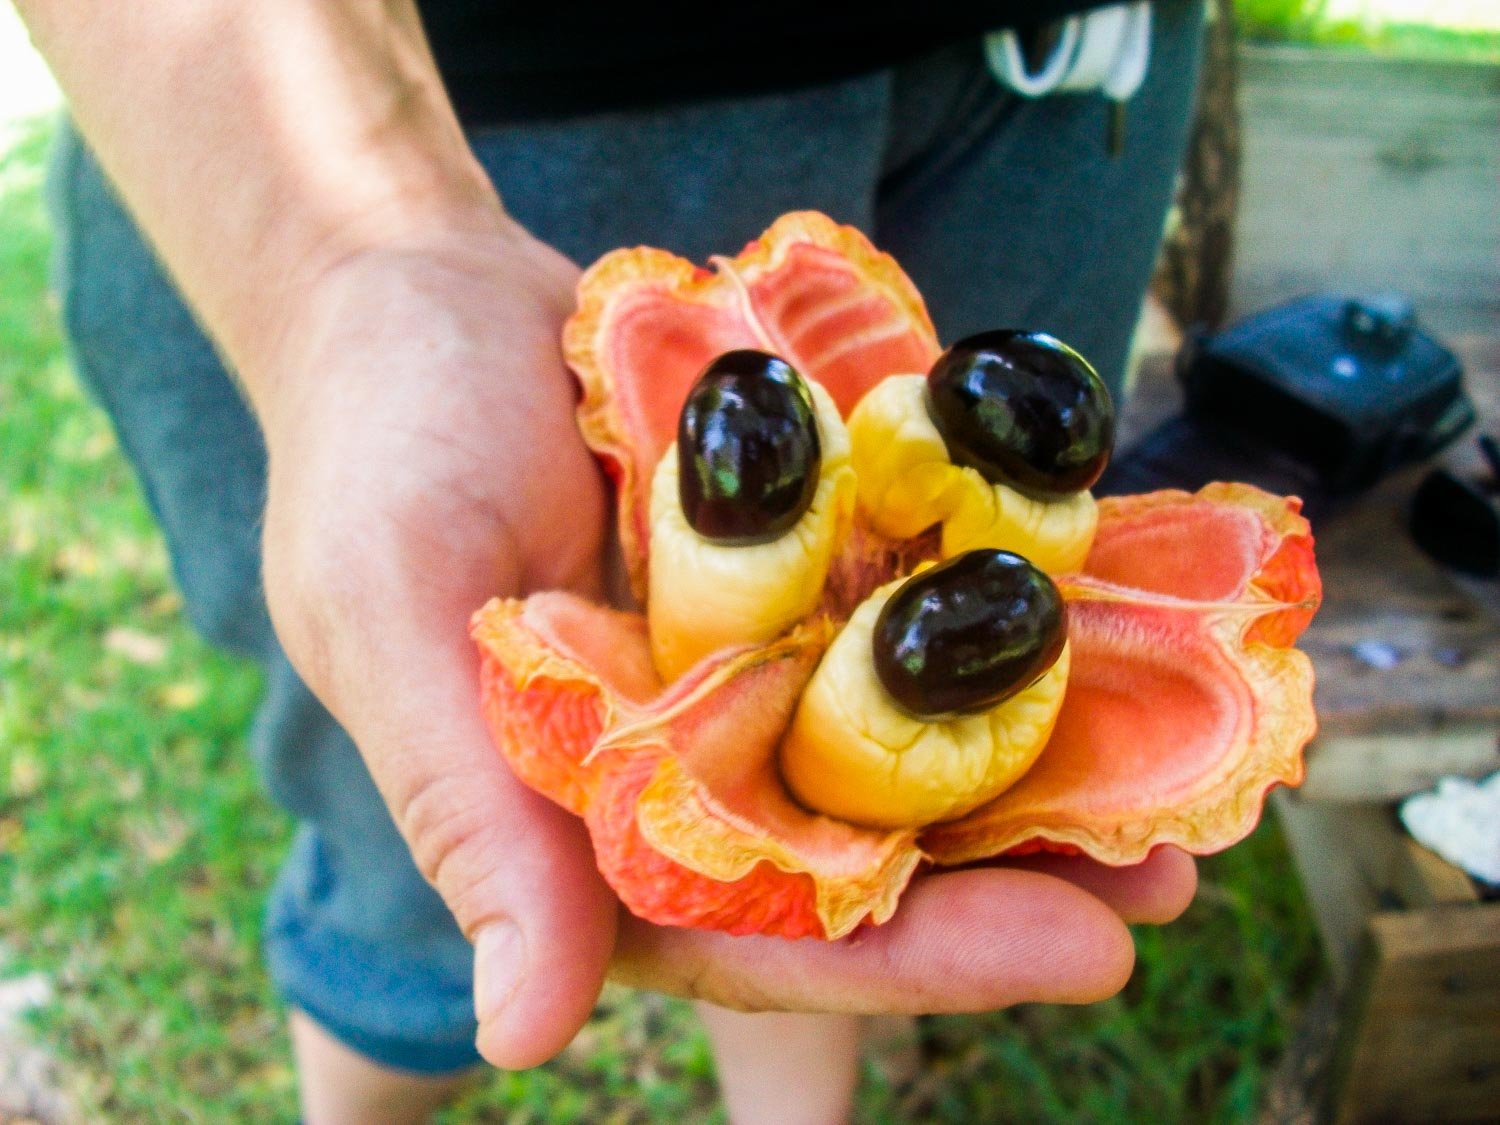 Jamaican ackee in a man's hand